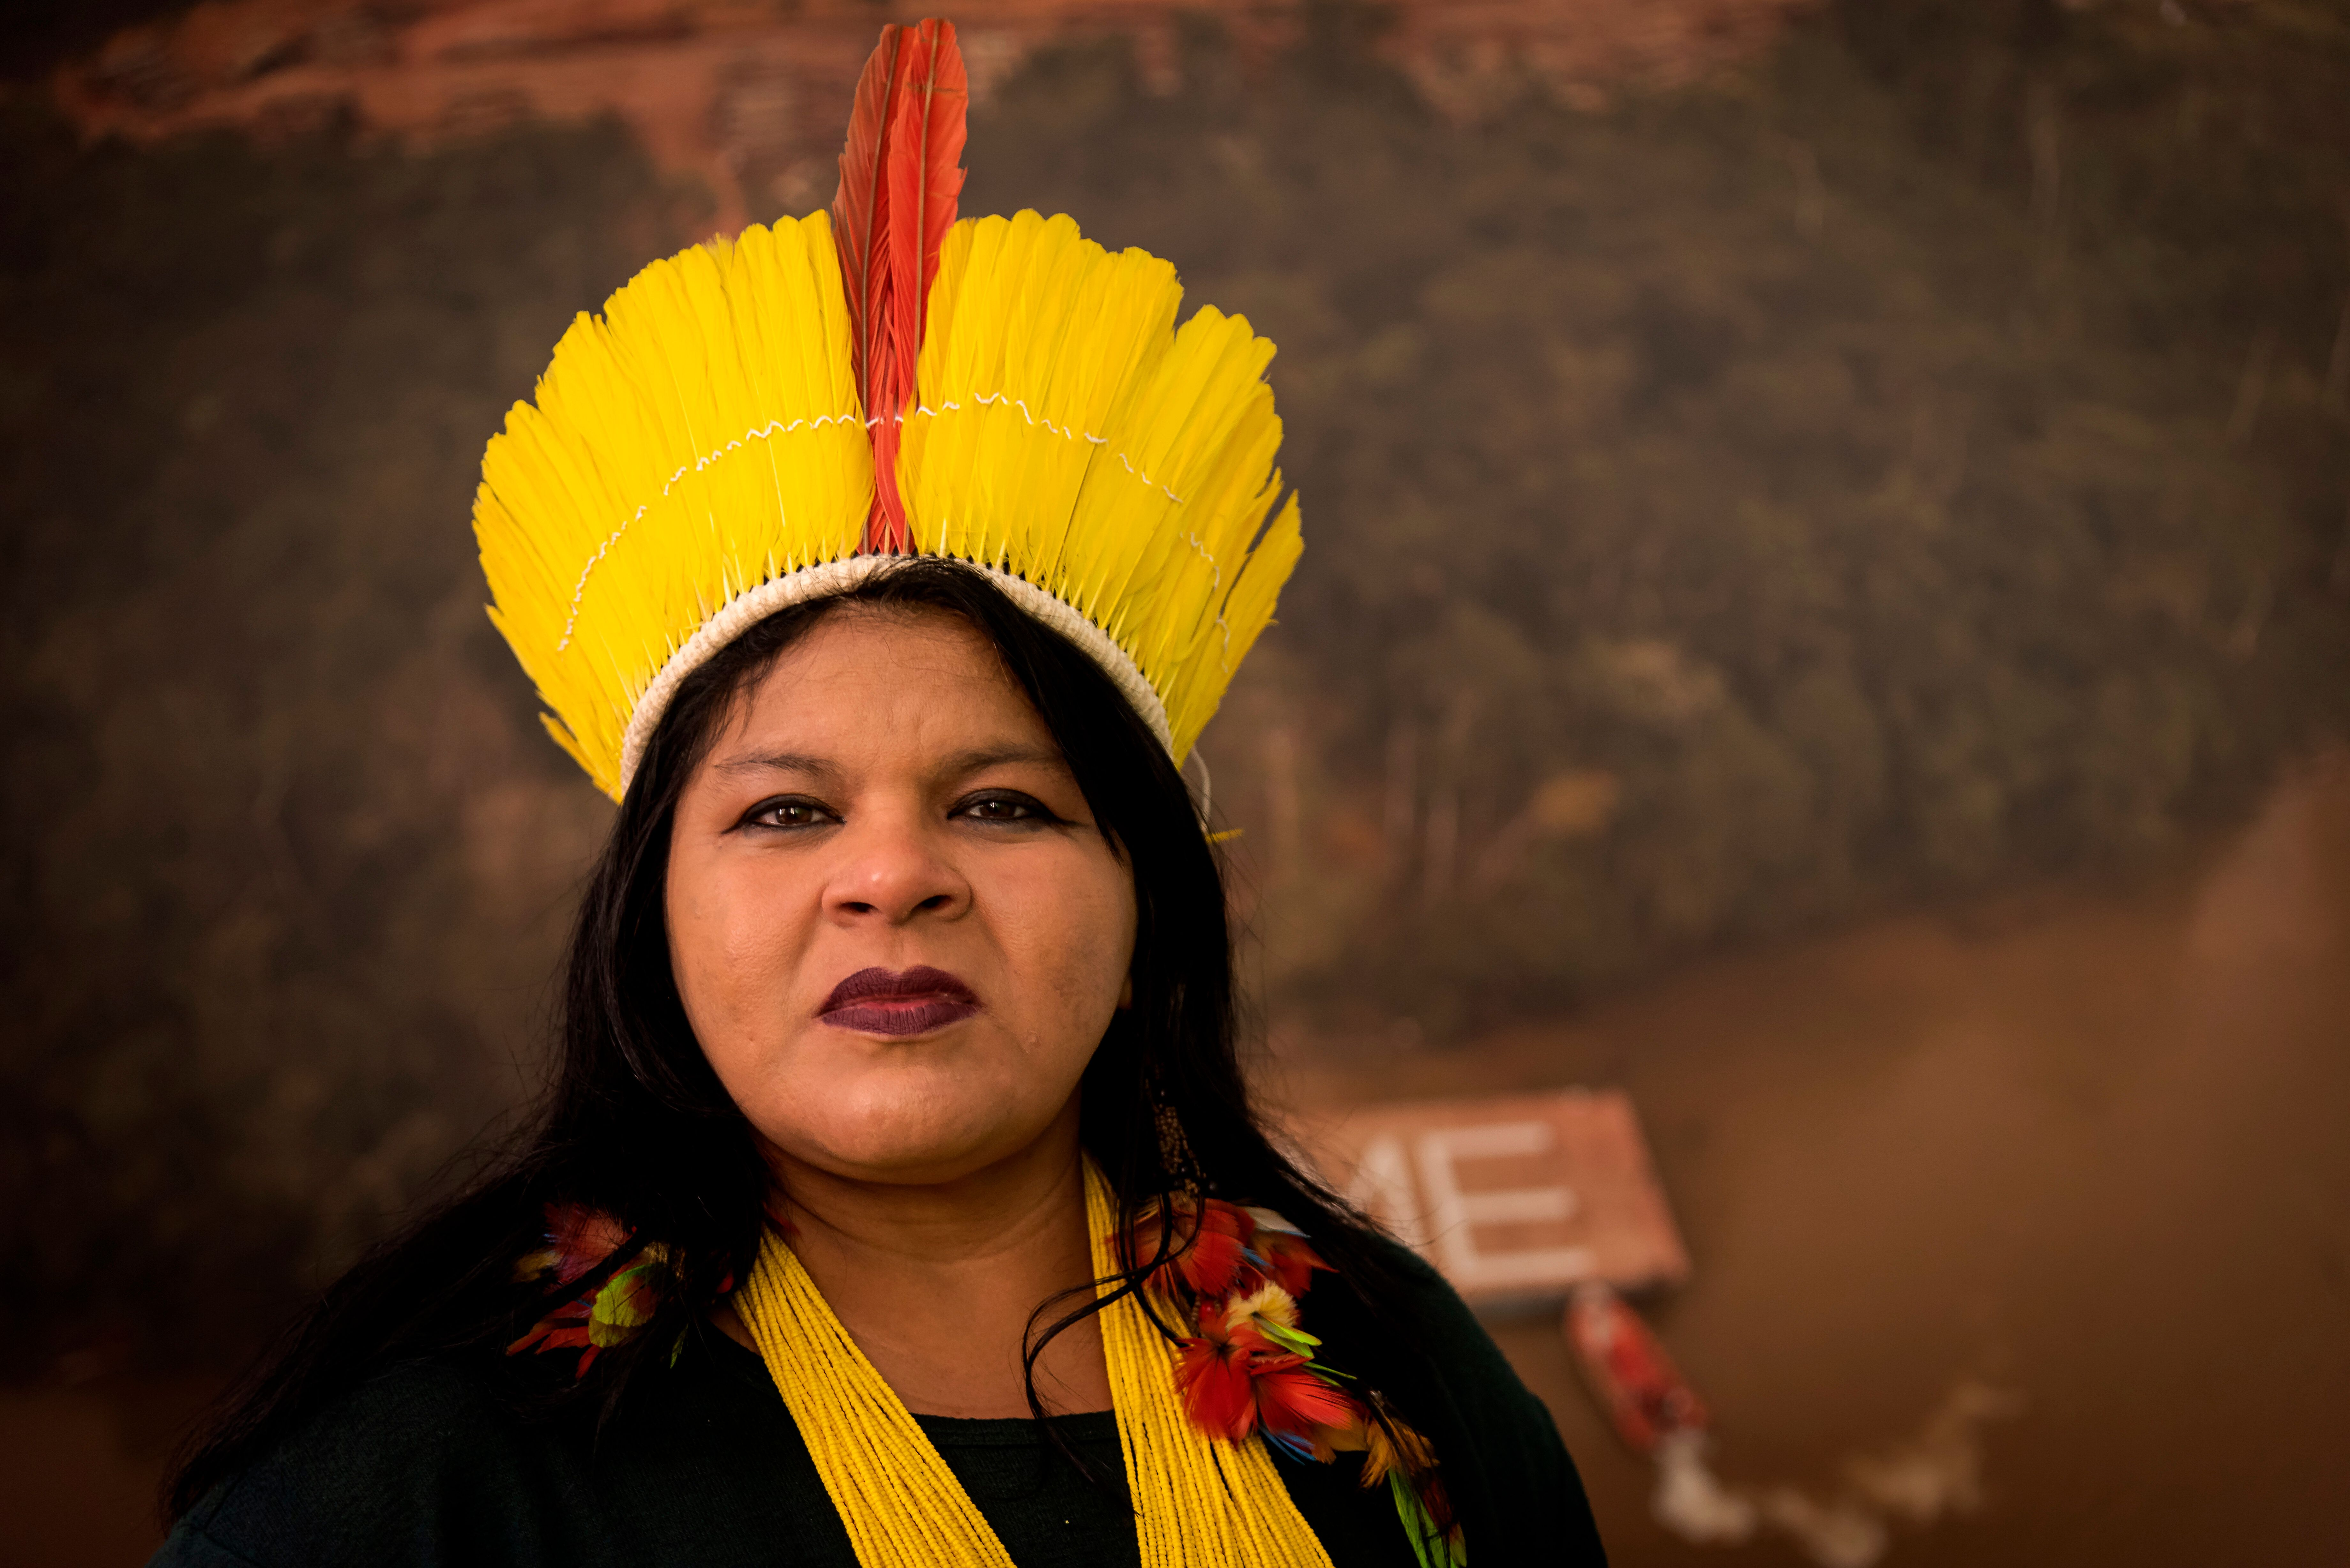 Sonia Guajajara, the leader of the Guajajara tribe and Brazil's largest Indigenous organization, was subpoenaed by the Brazil